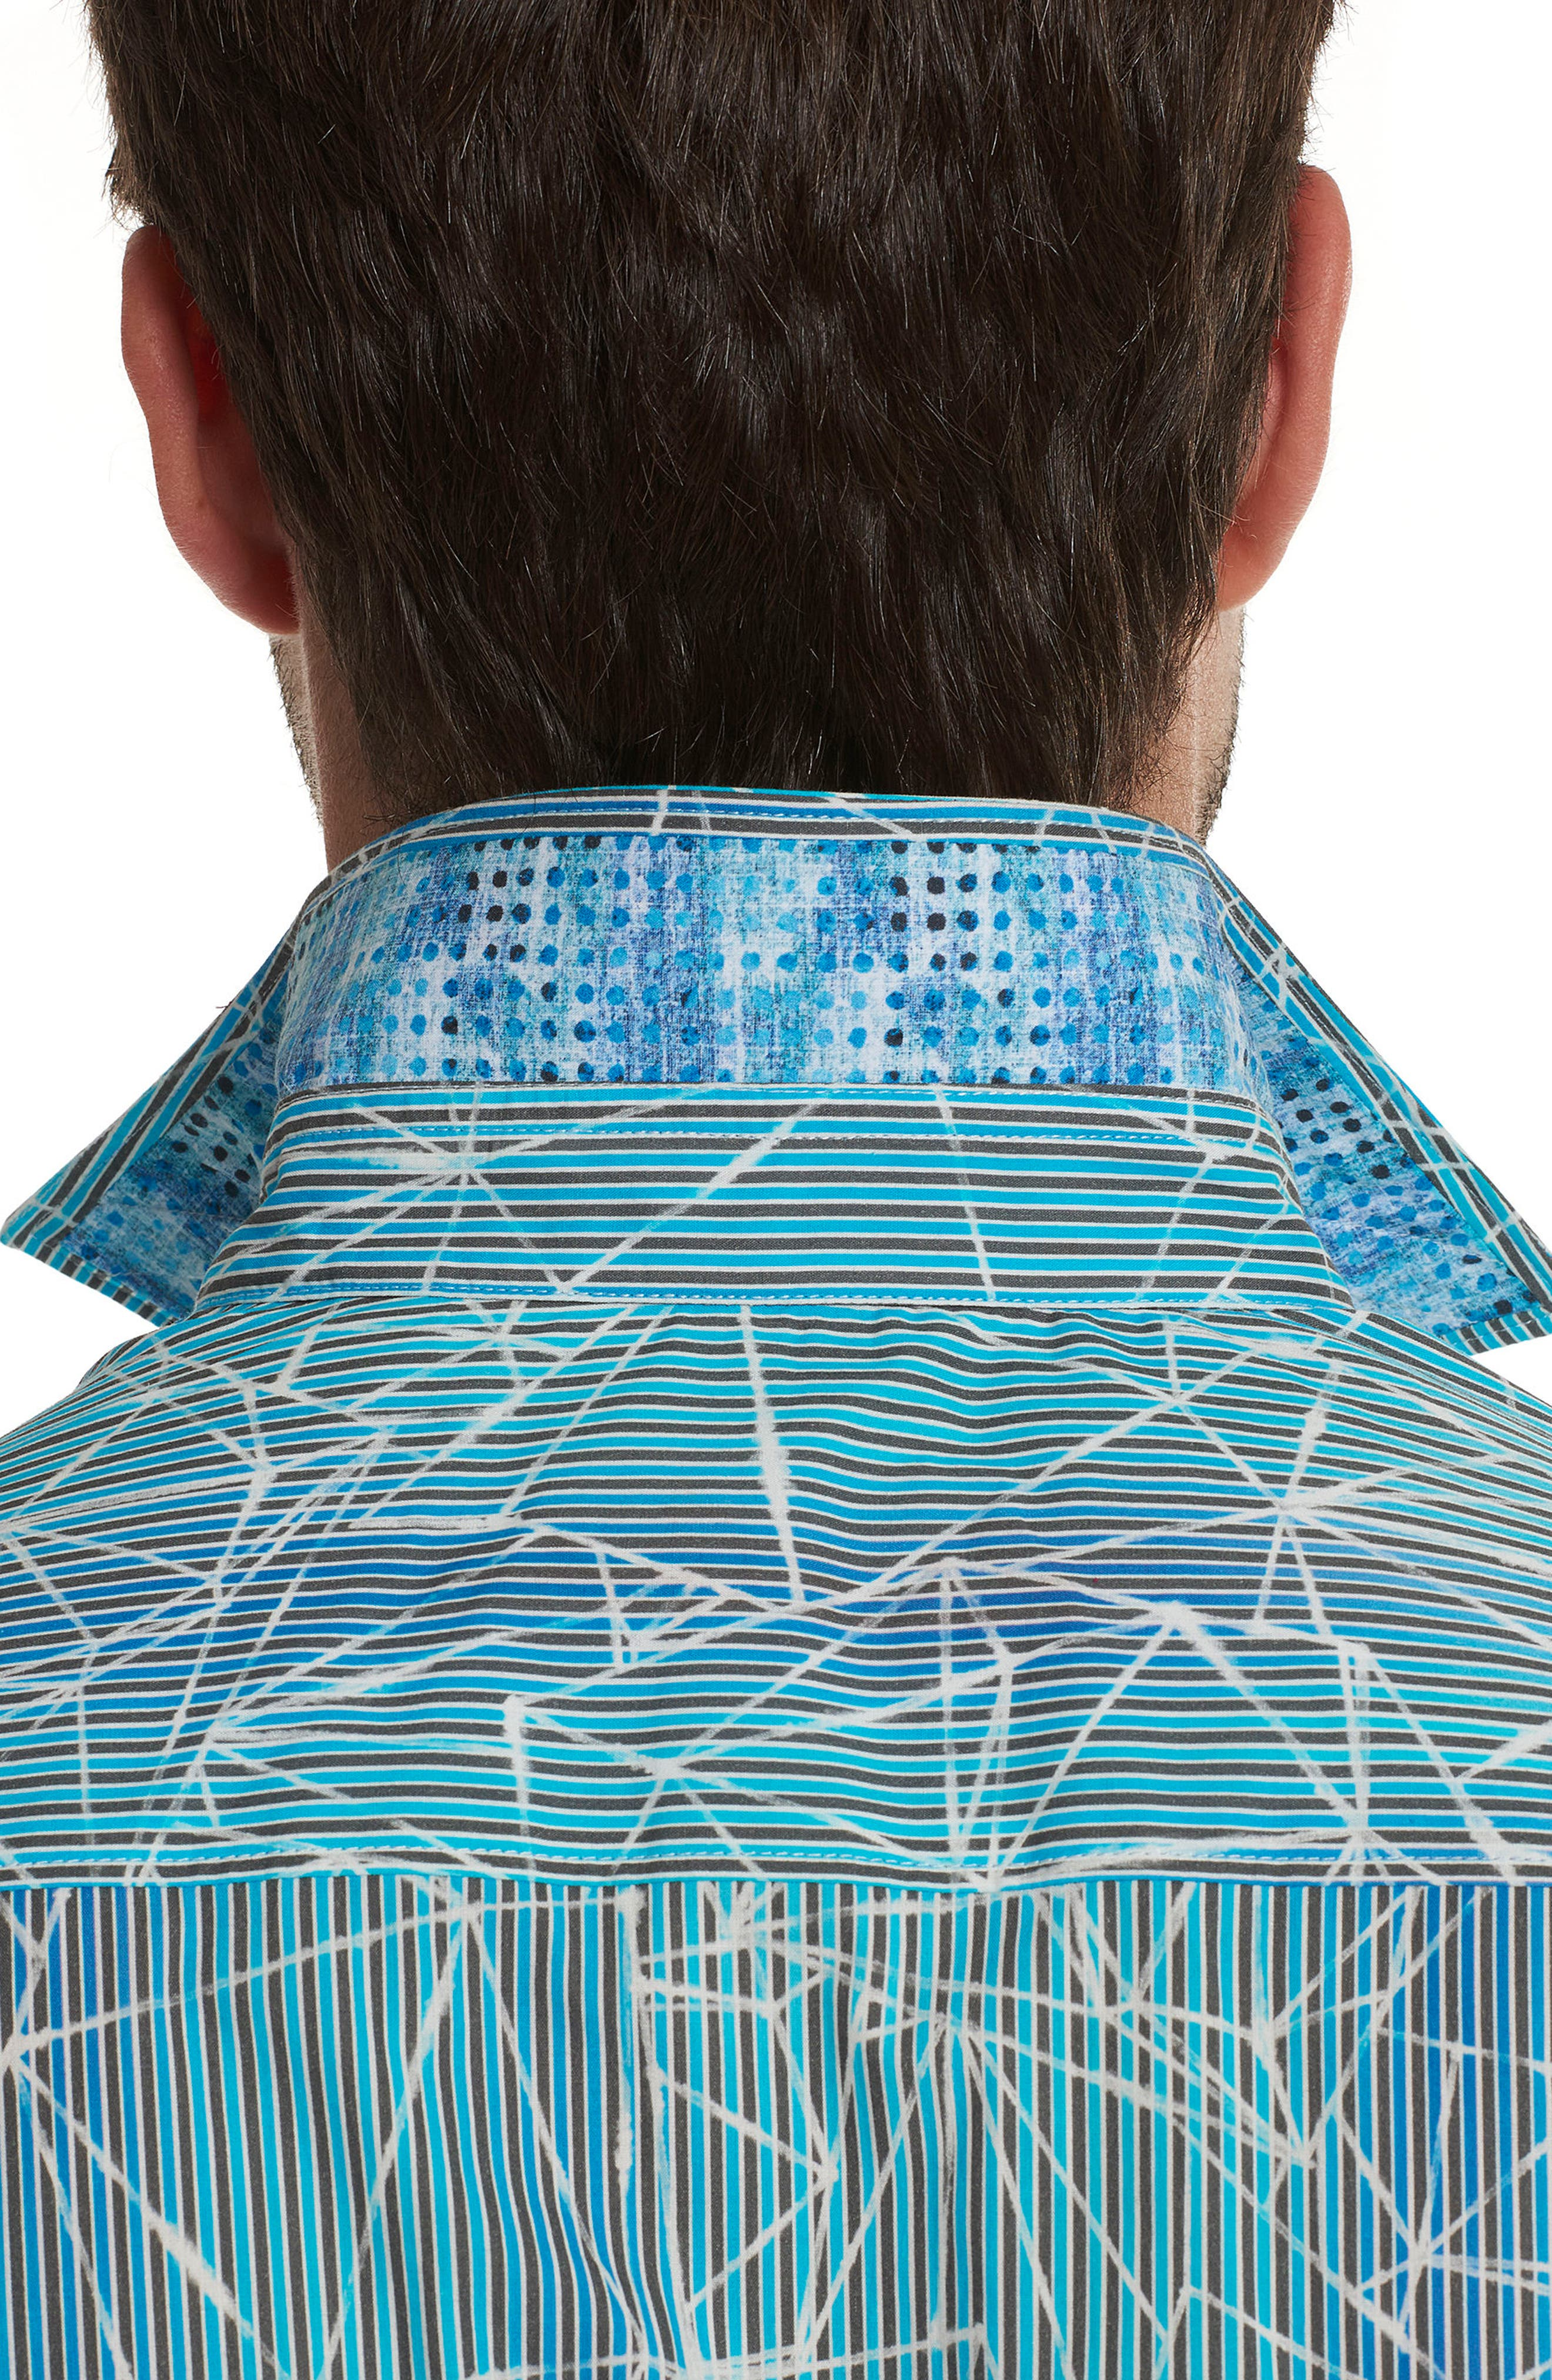 Illusions Print Sport Shirt,                             Alternate thumbnail 3, color,                             Turquoise